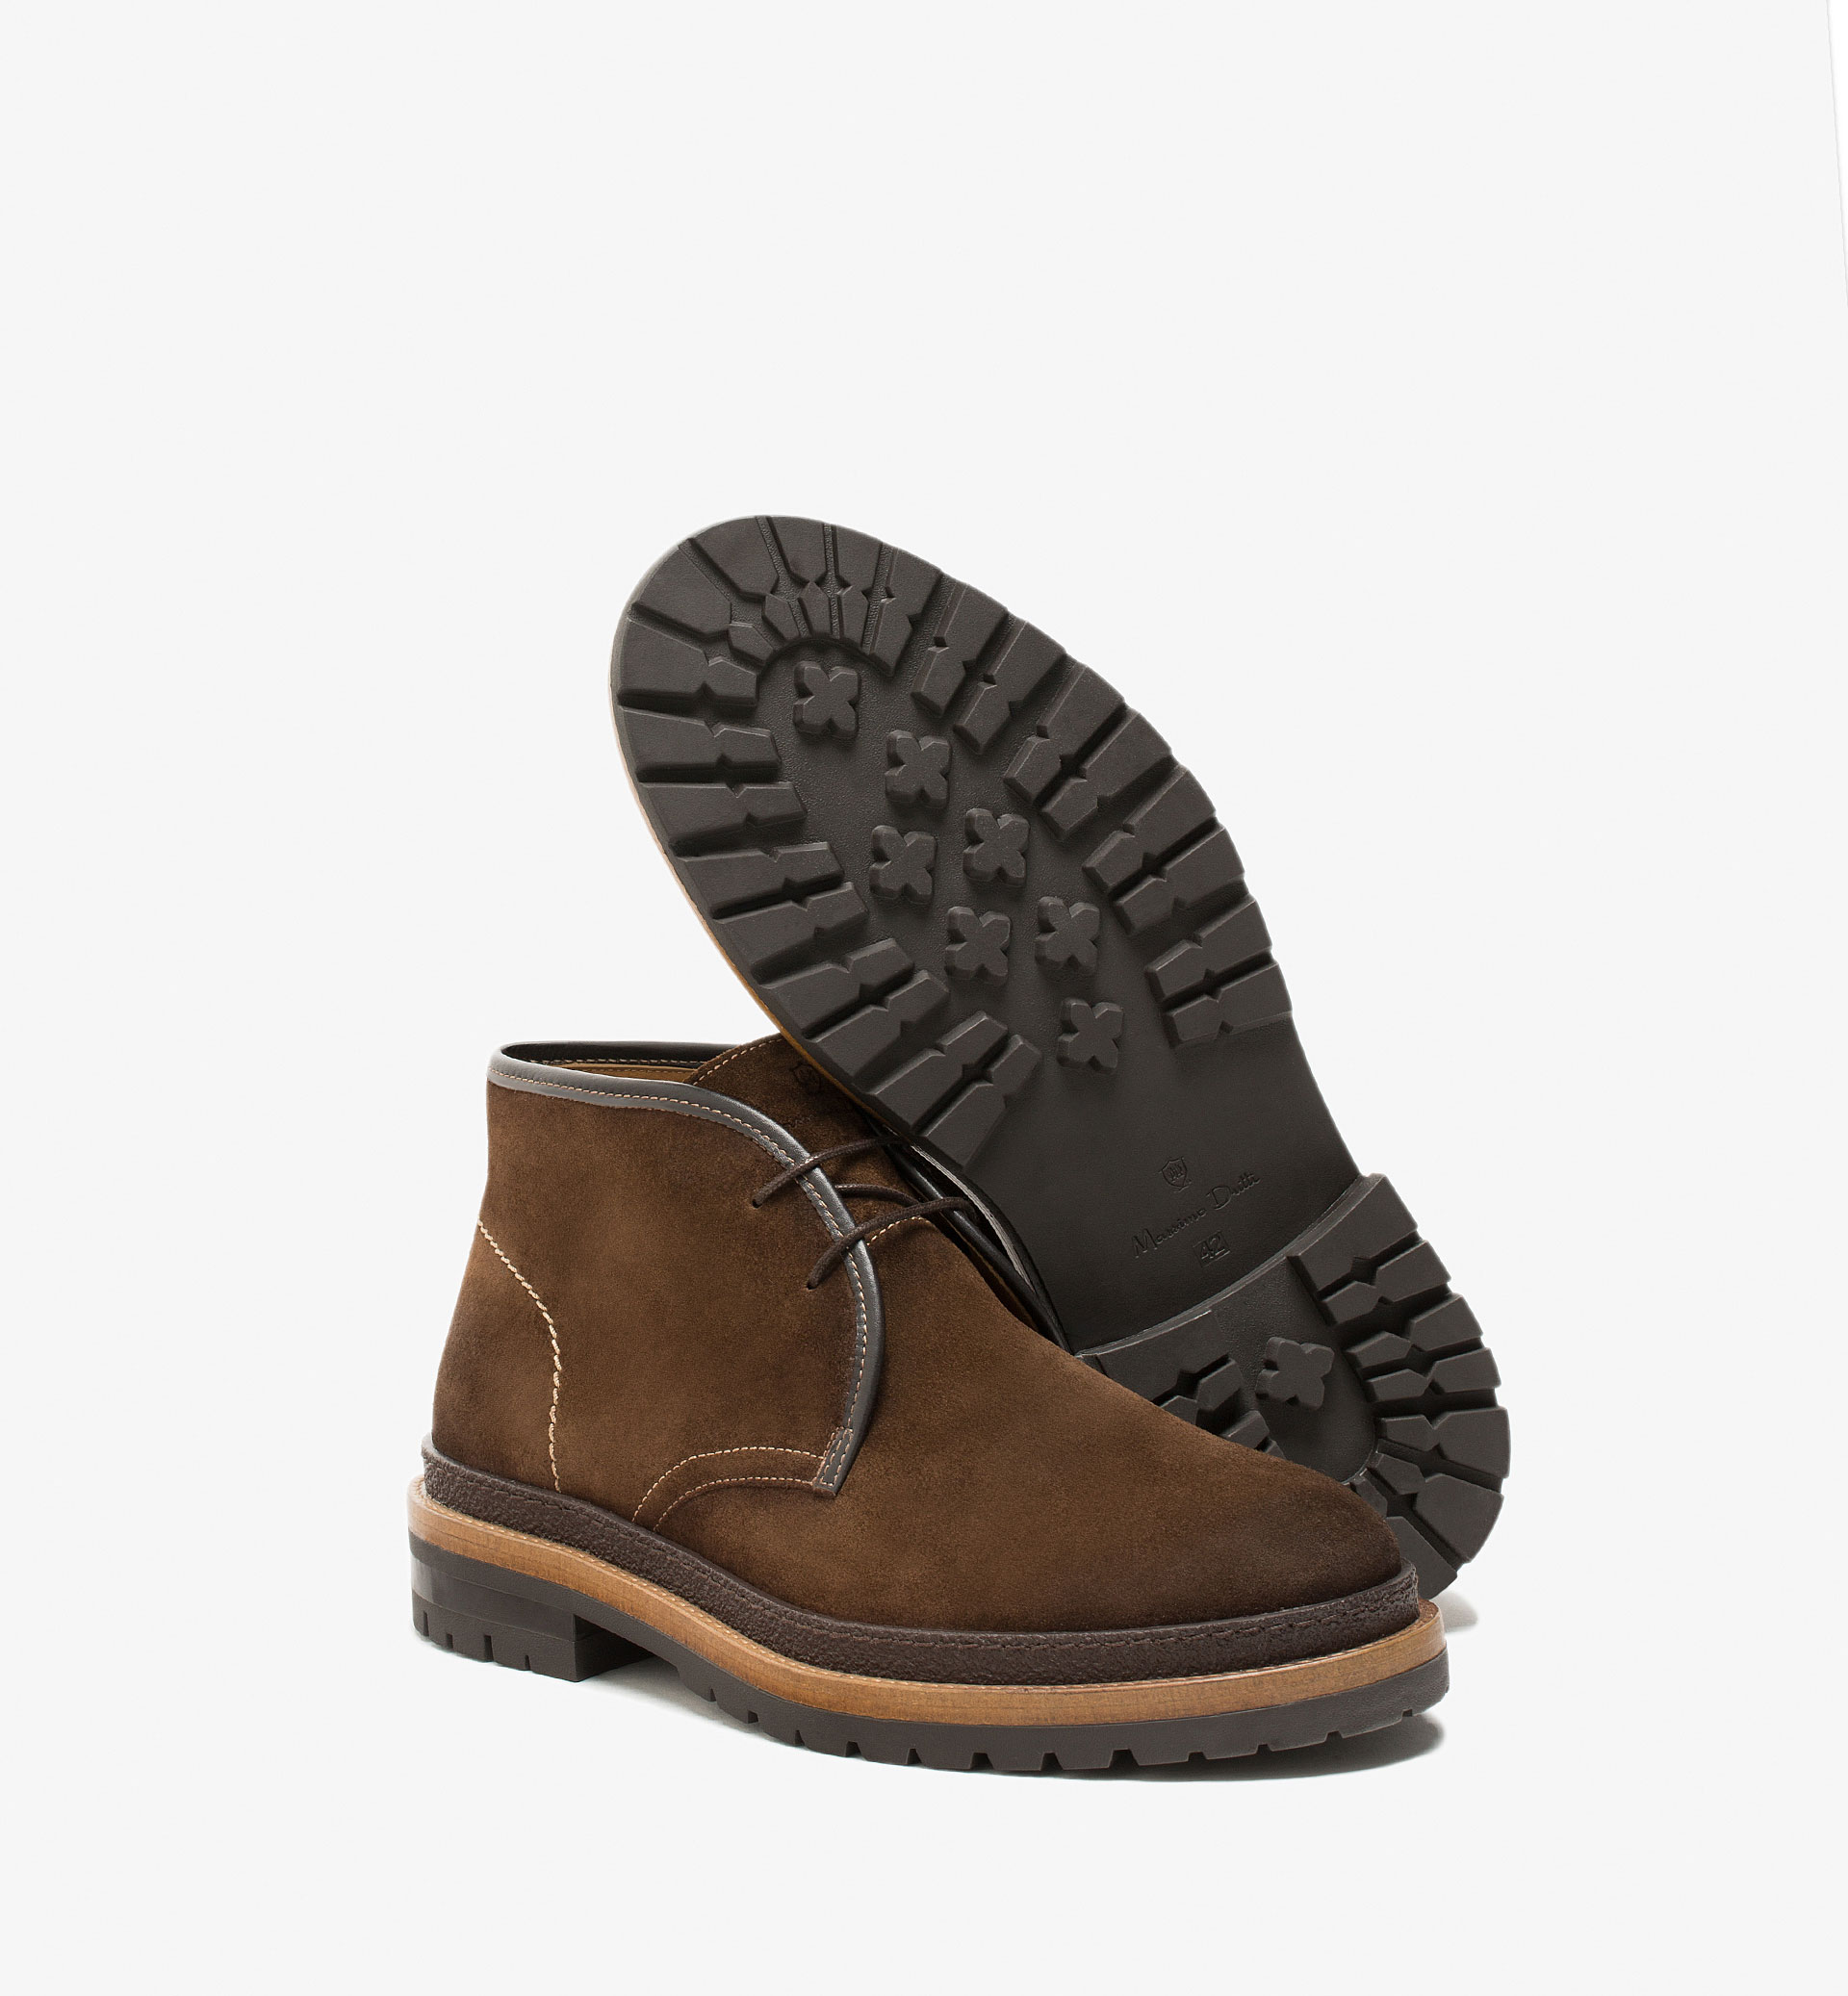 LEATHER SAFARI BOOTS